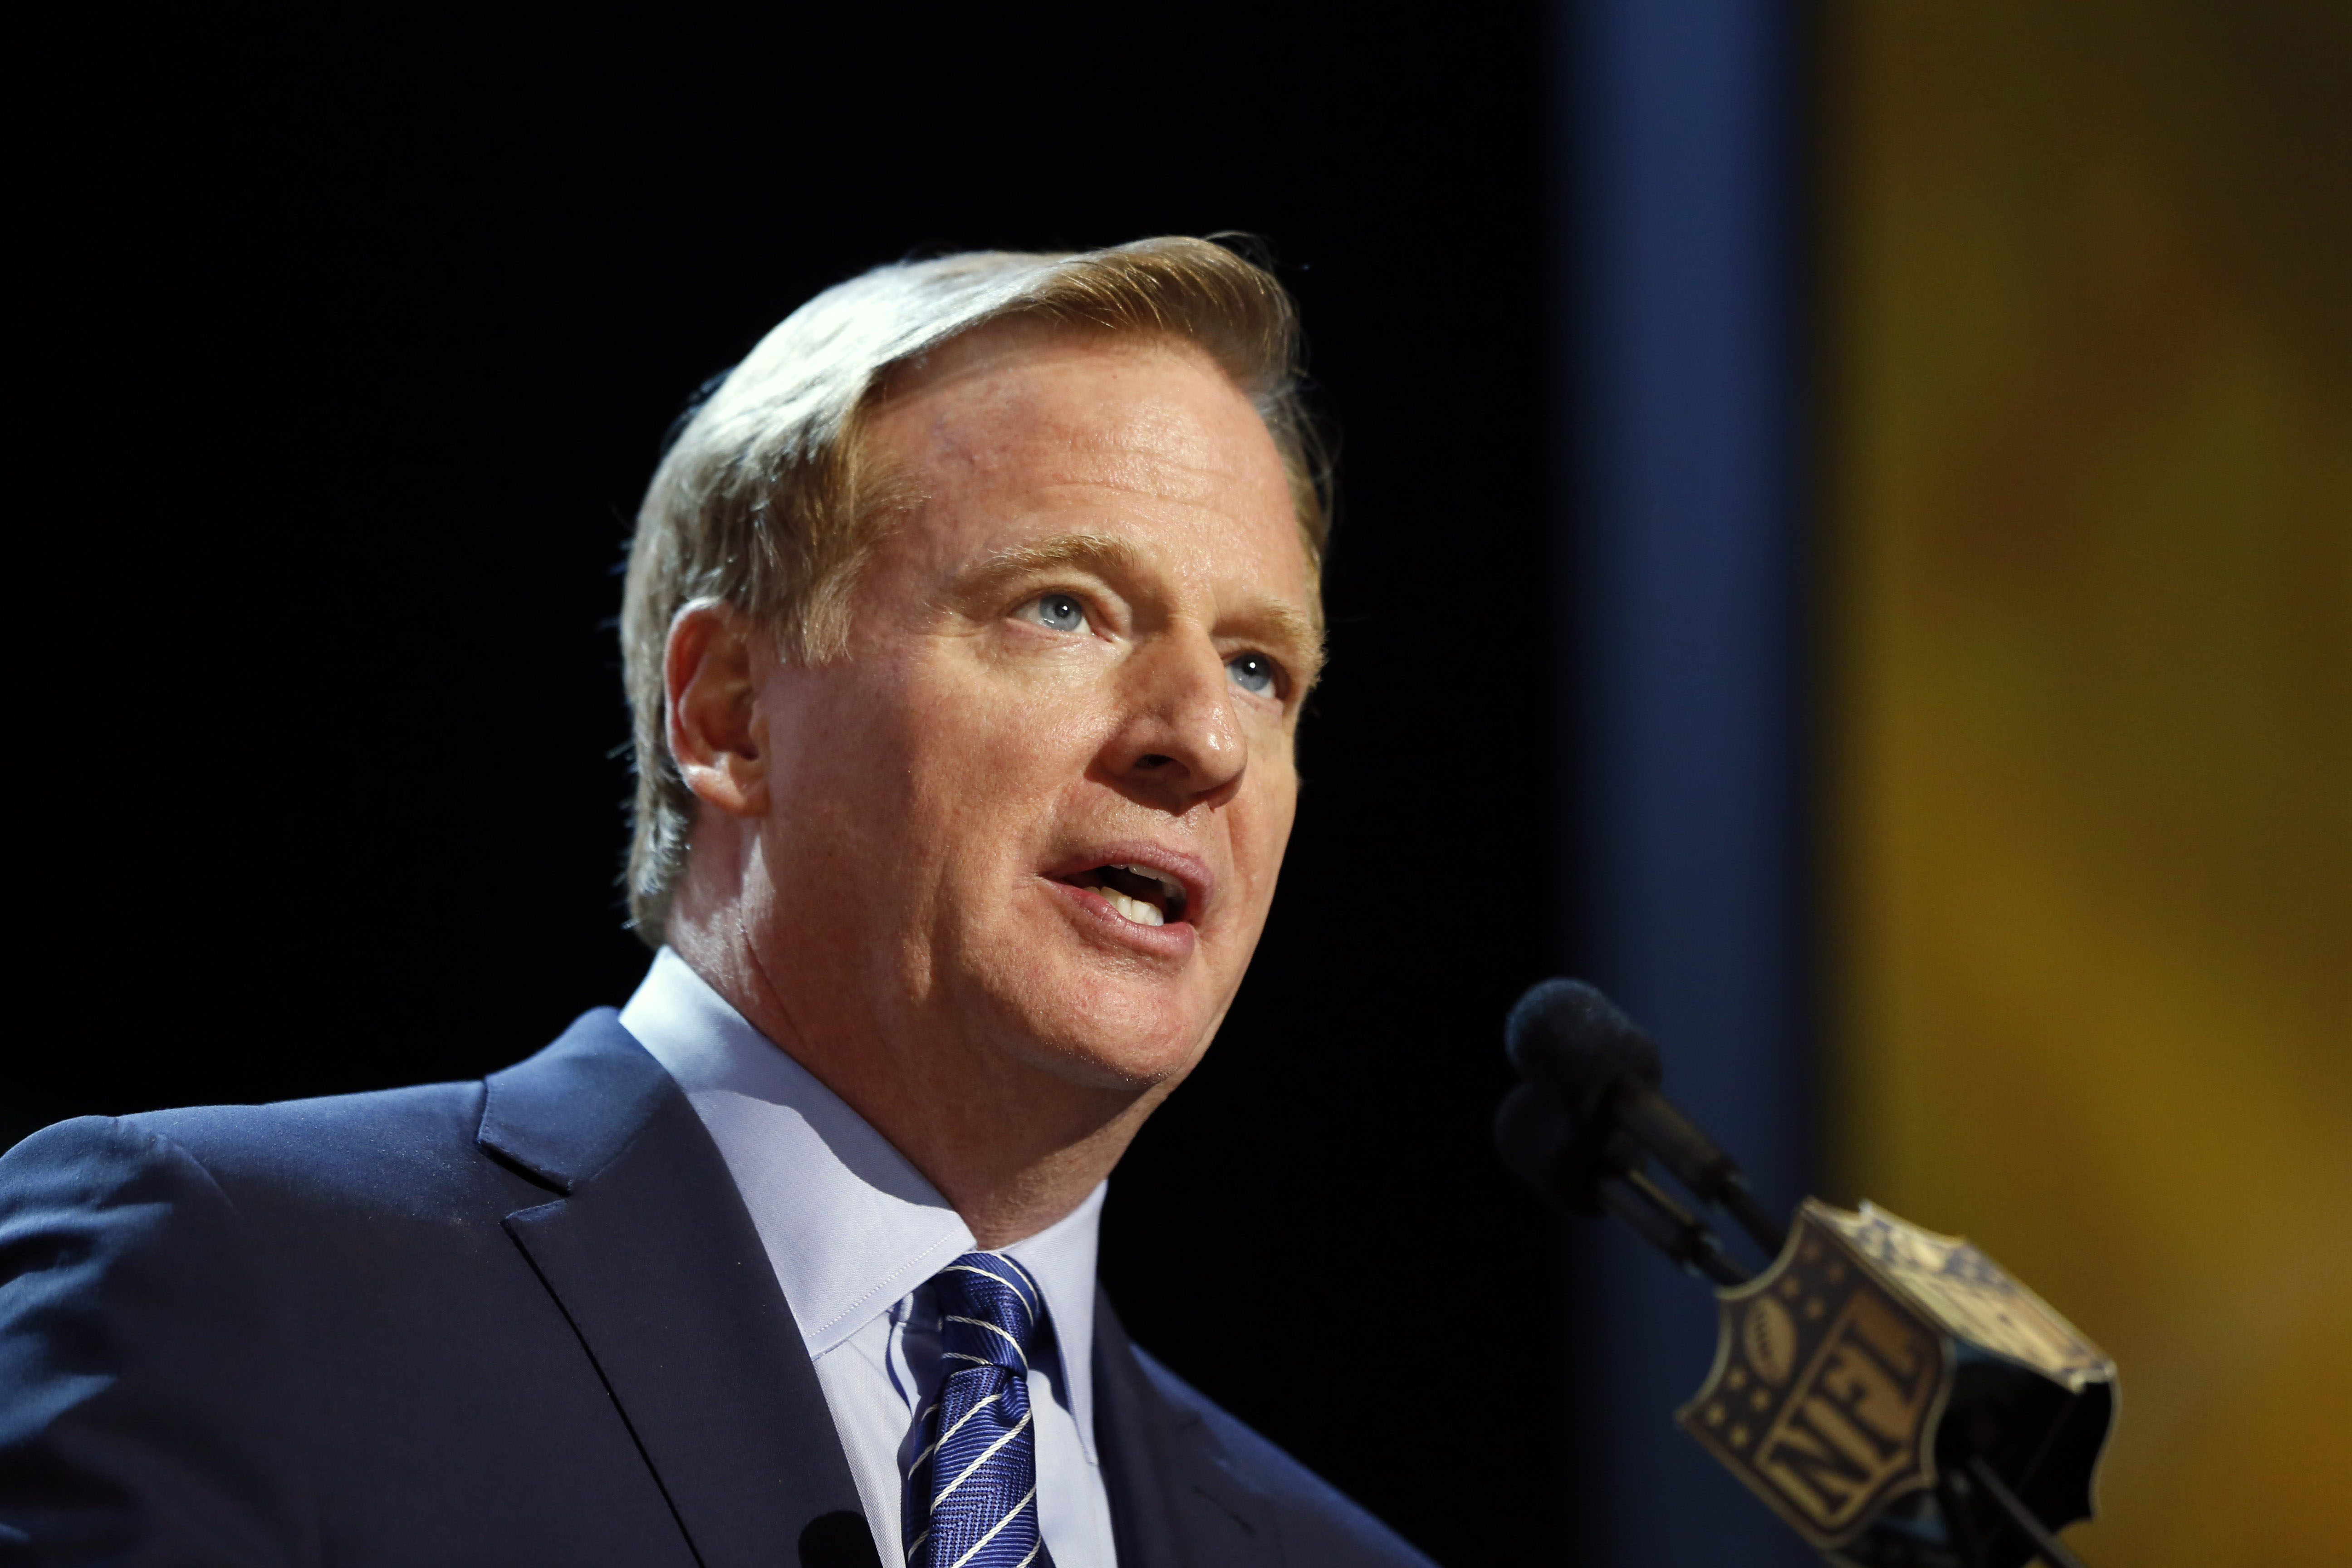 FILE - In this Thursday, April 30, 2015 file photo, NFL commissioner Roger Goodell speaks during the first round of the 2015 NFL Football Draft in Chicago. Without the games to distract from the issues, football fans were left to ponder the NFL's policies